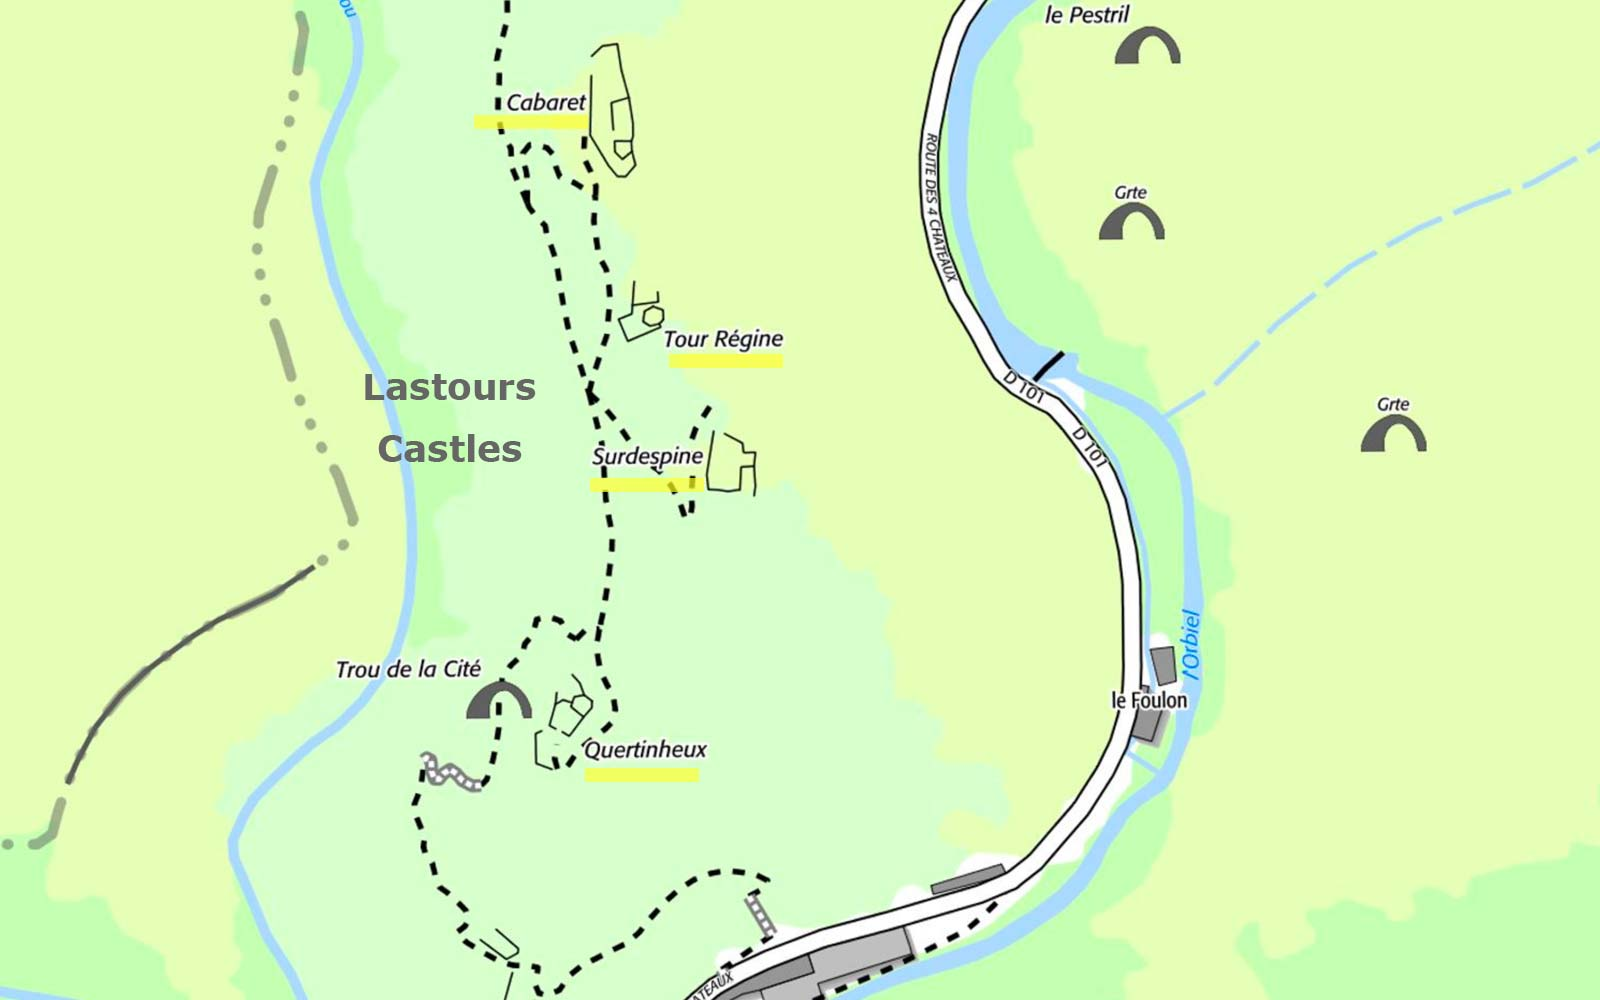 Lastours Castles photo lastours-castles-map002bb.jpg